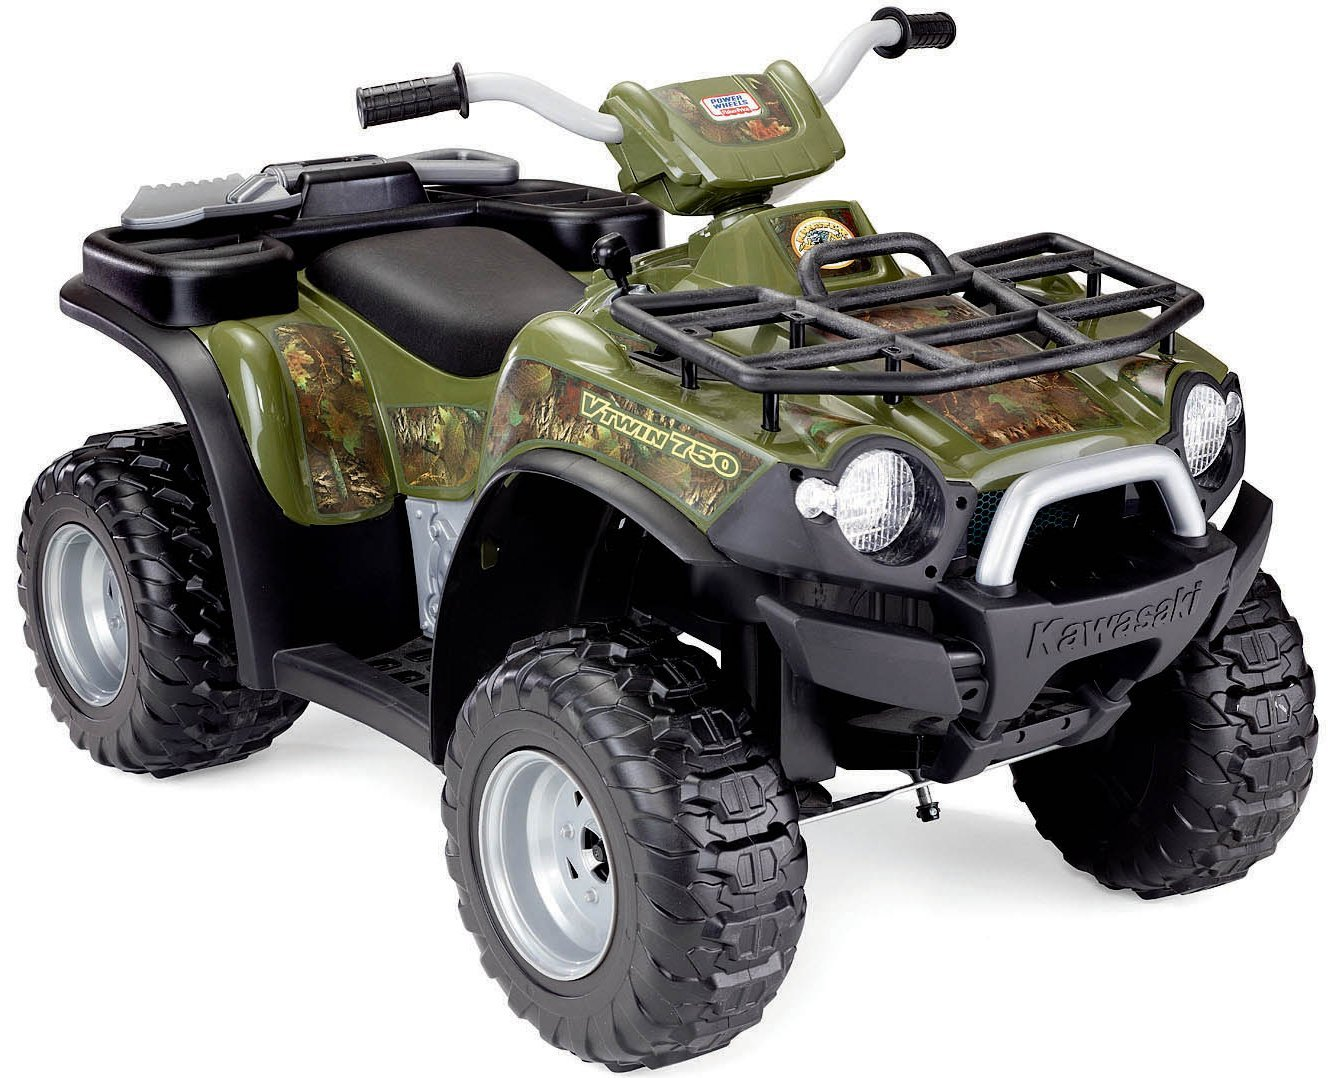 Four Wheeler With Rims: Best Power Wheels For Grass